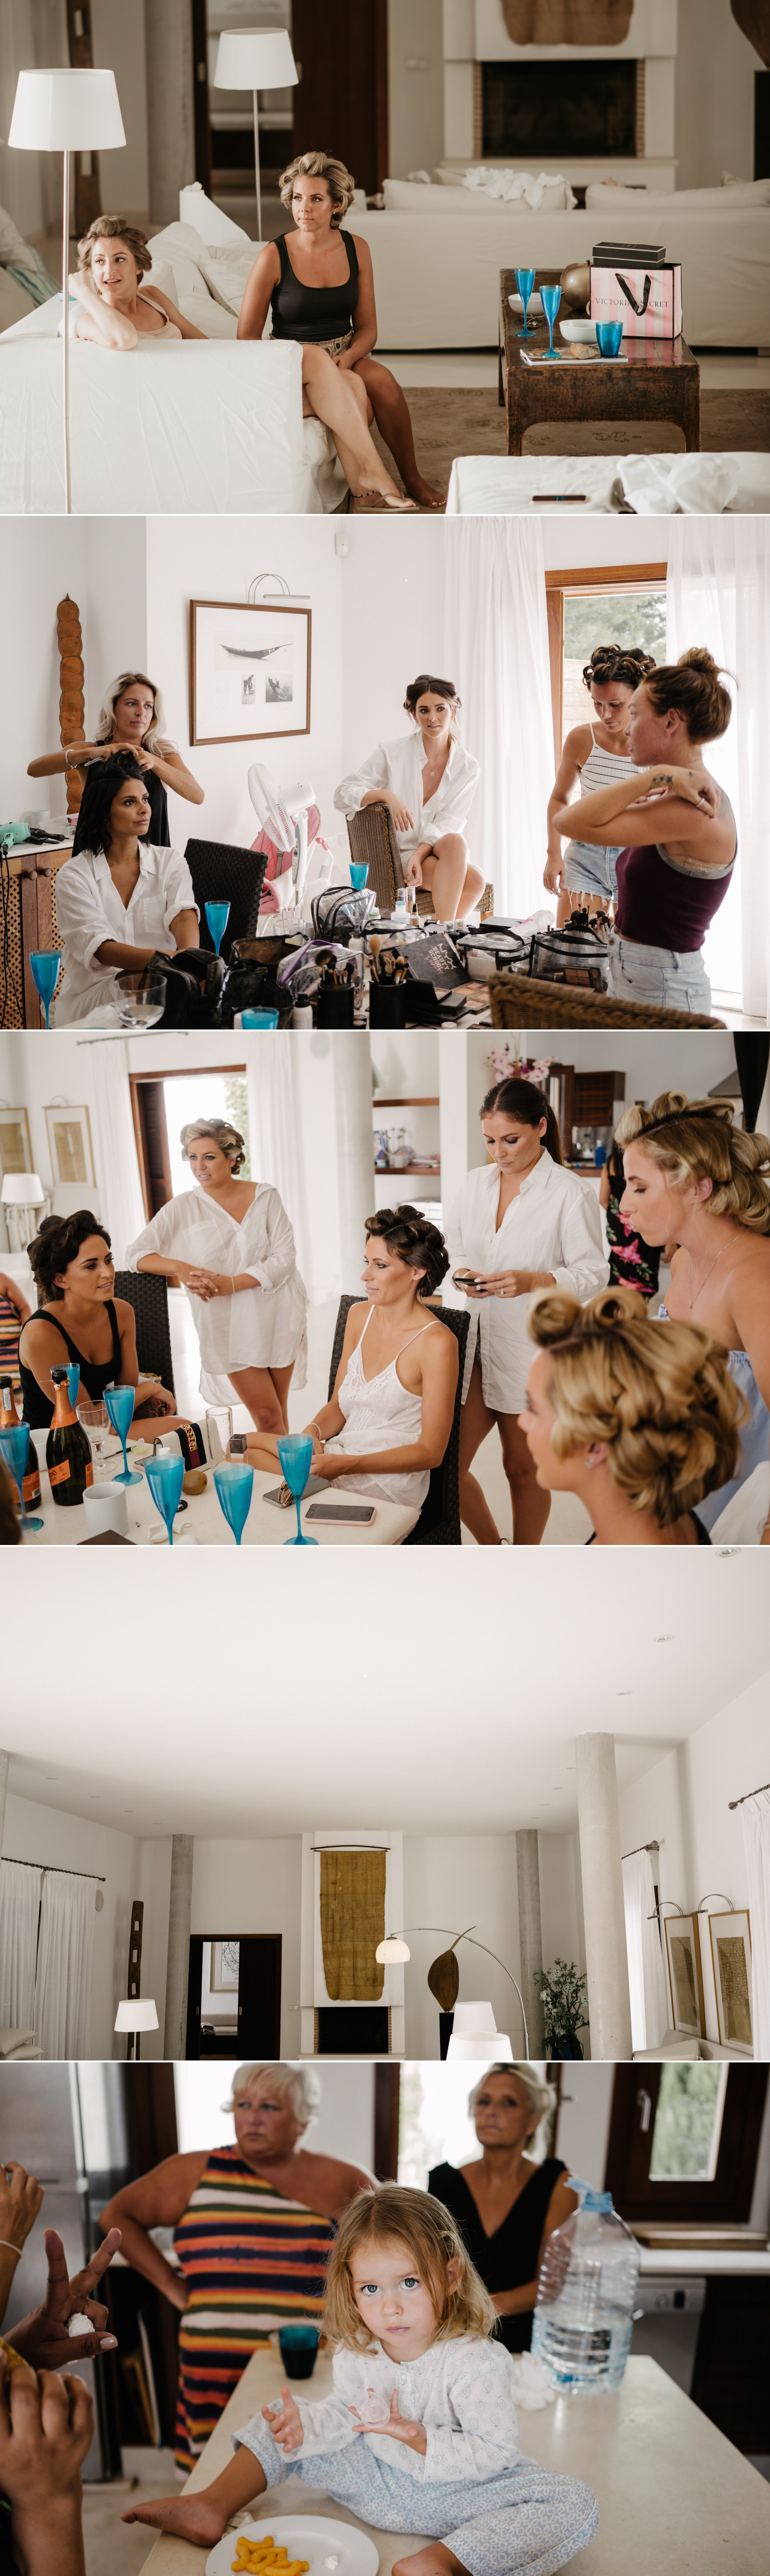 natural wedding photo destination ibiza 0016 1